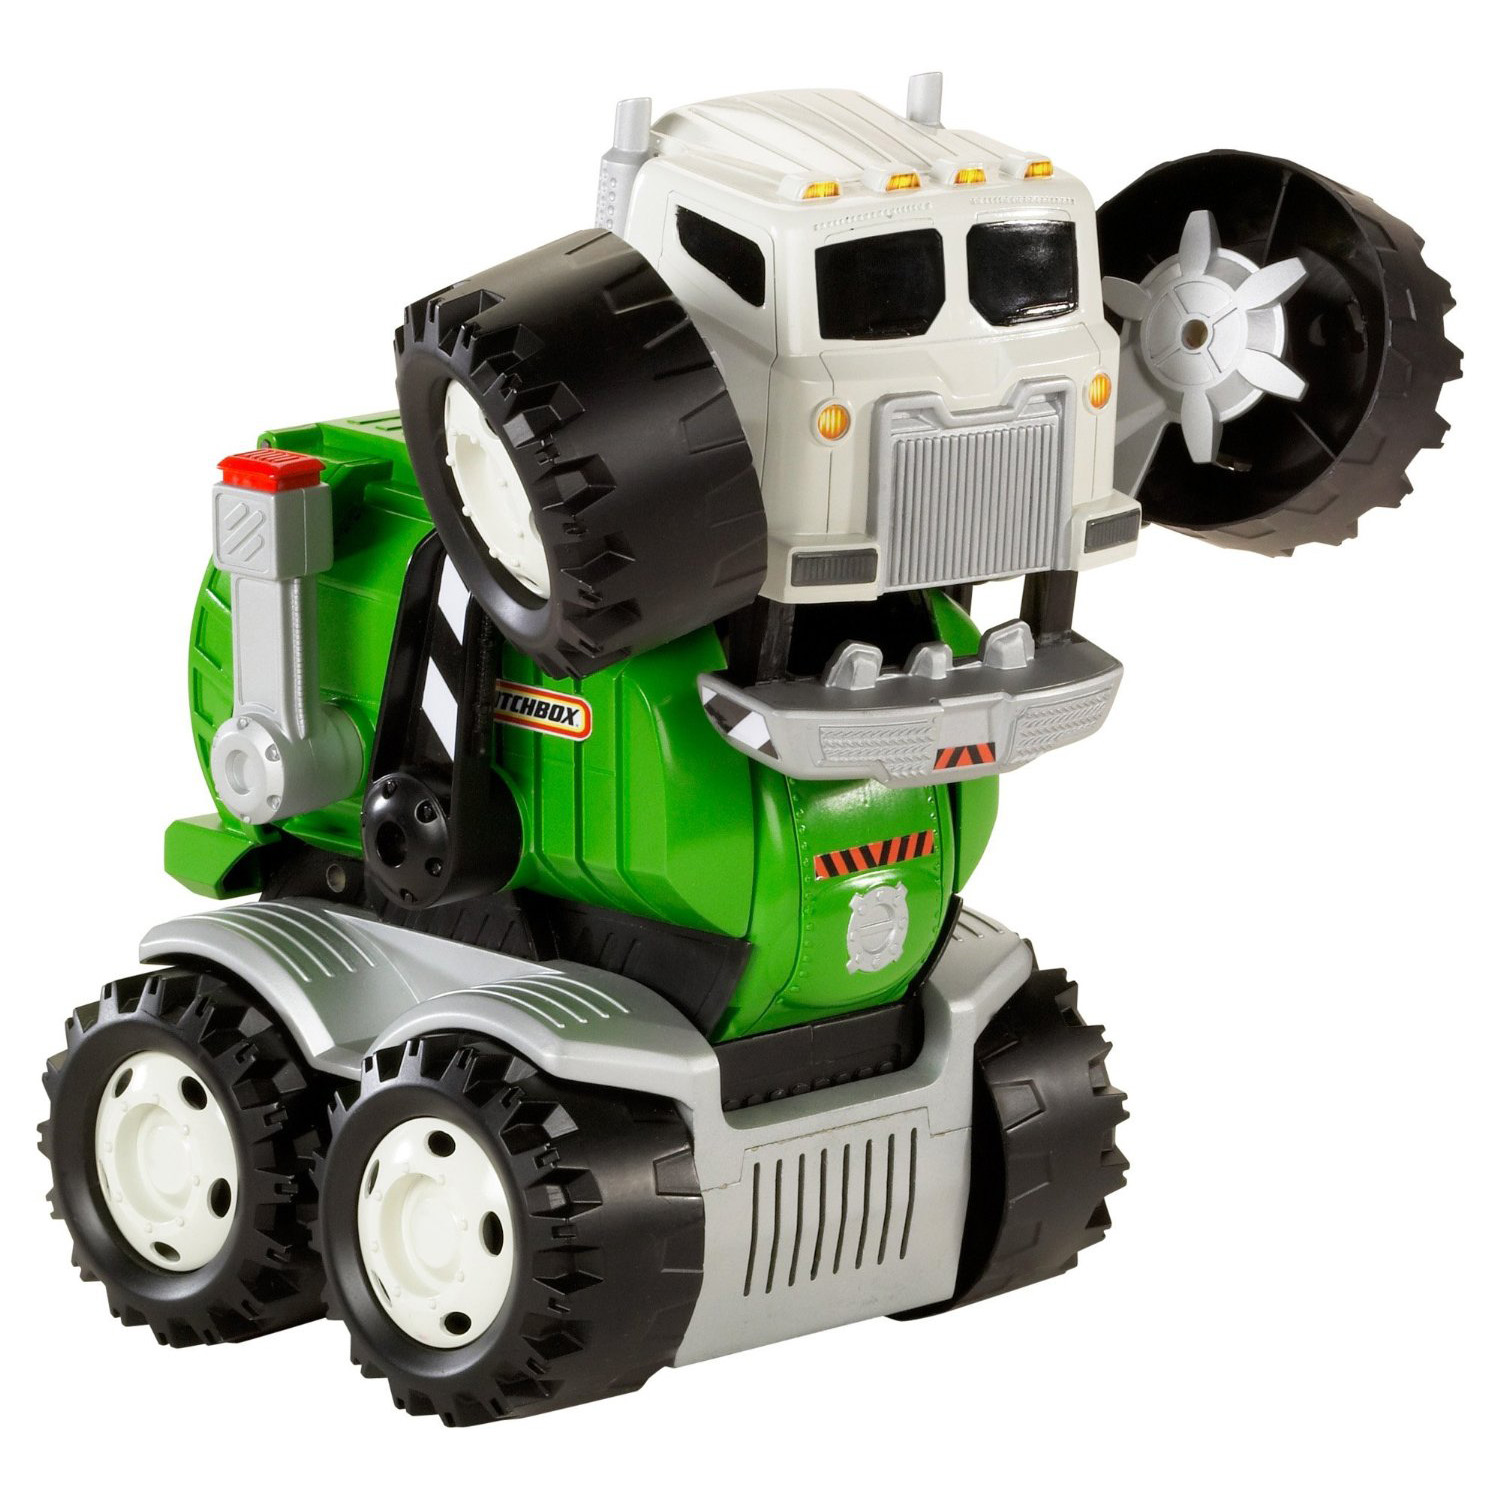 Matchbox Stinky Interactive Toy Garbage Truck Vehicle